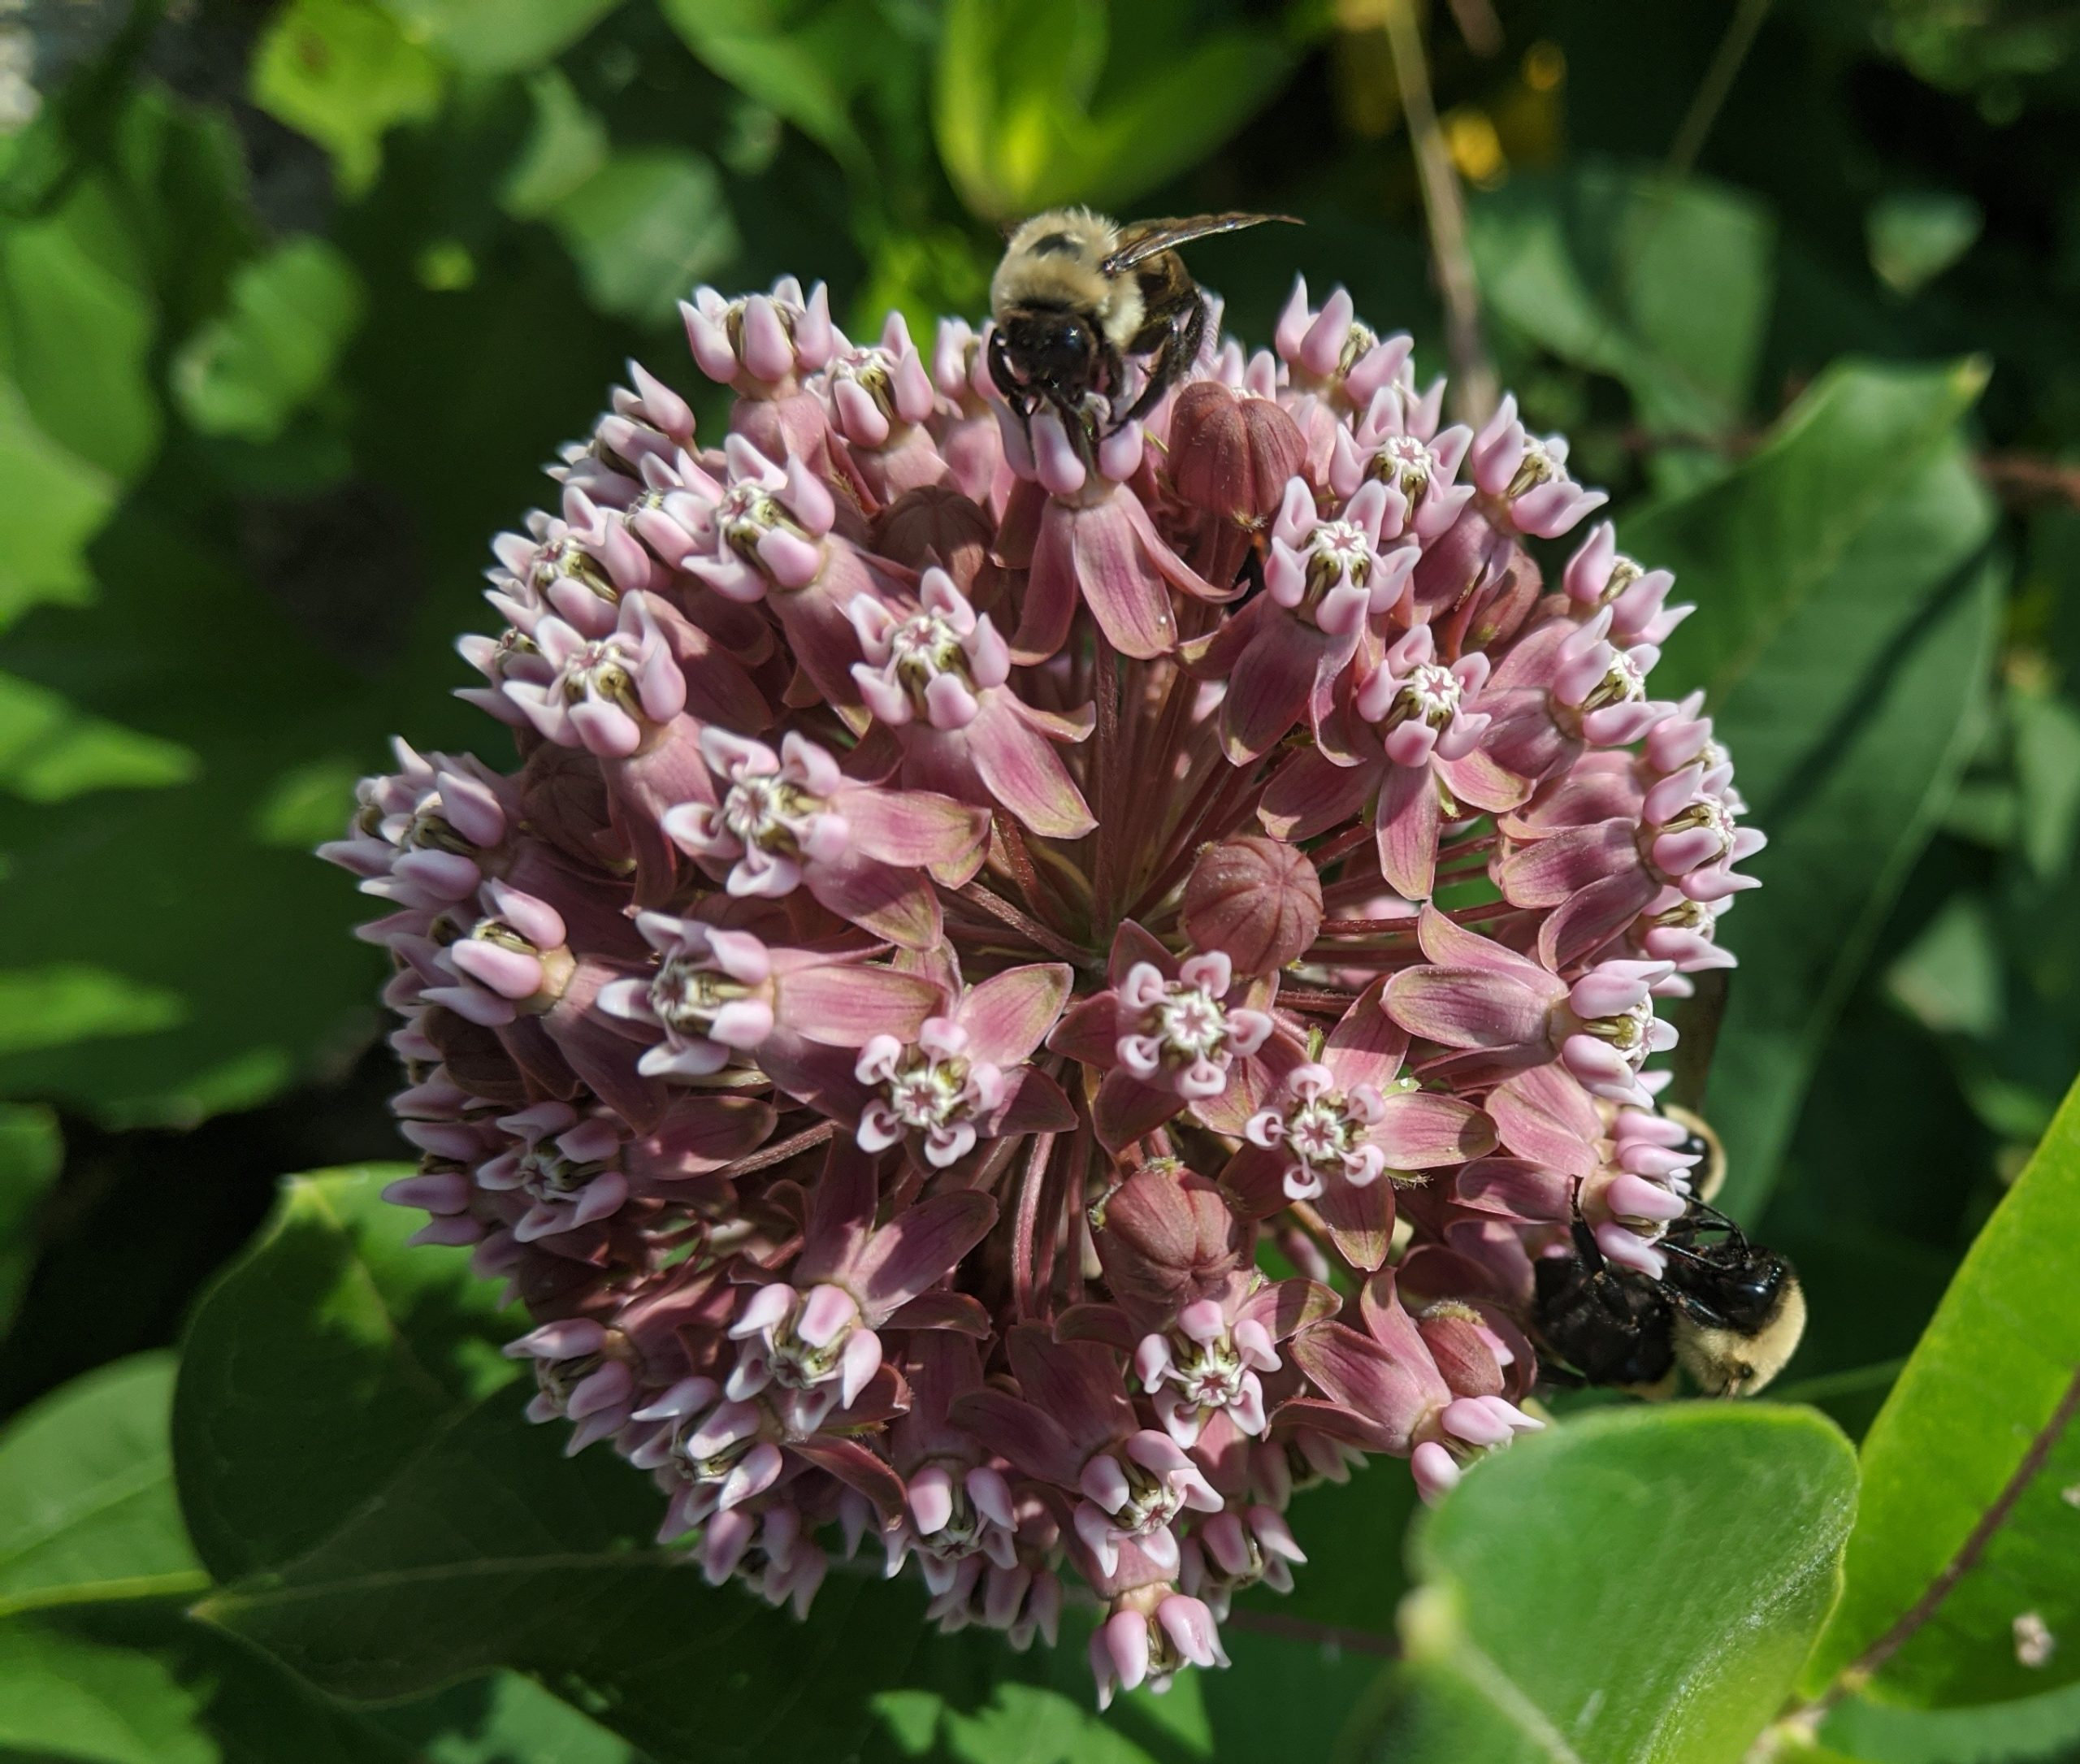 A bee lands on the pink flower of common milkweed.